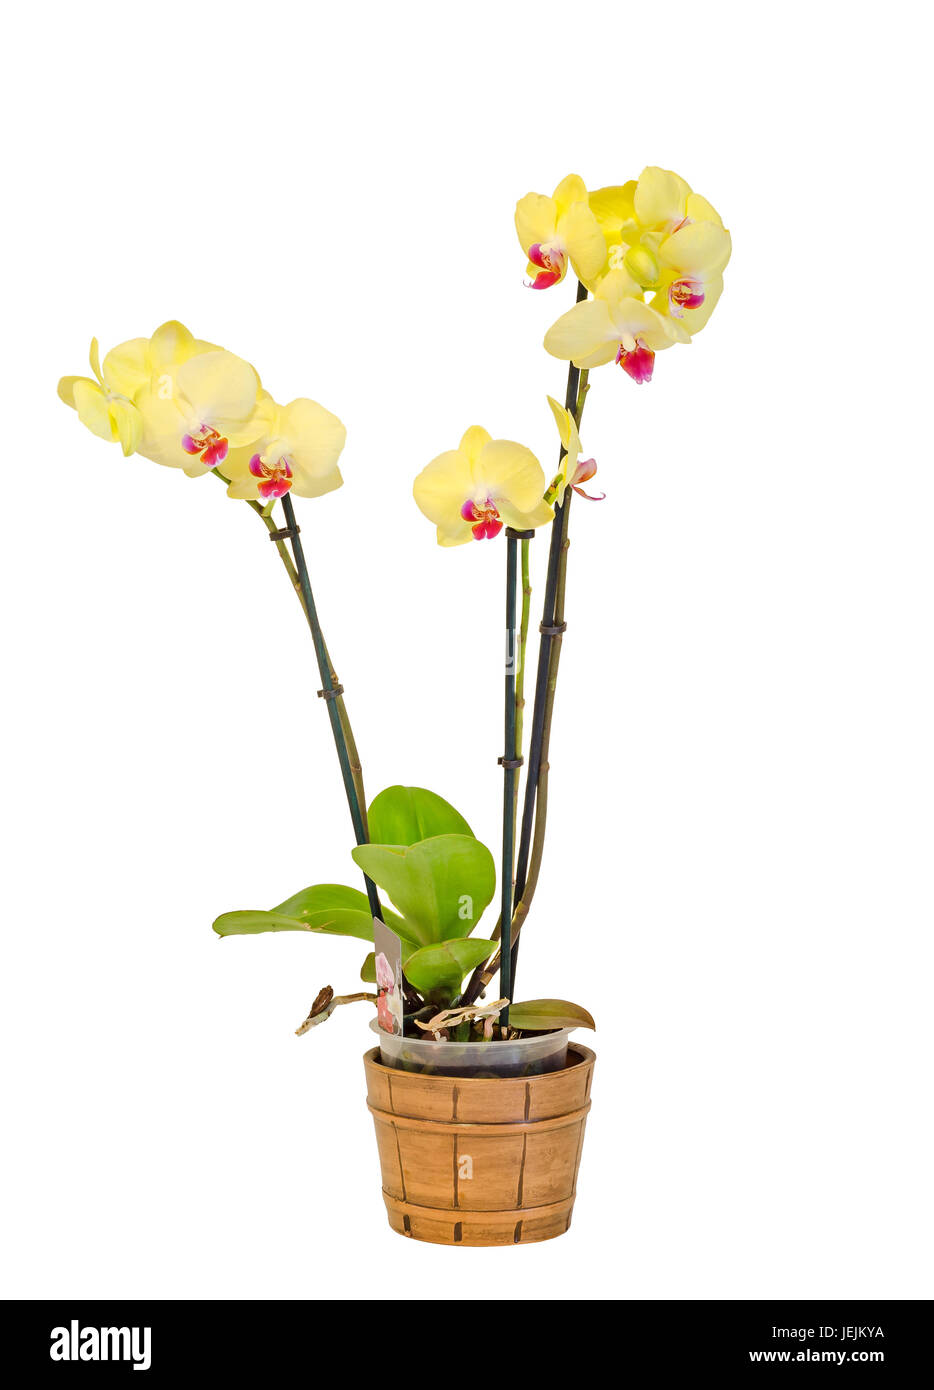 Yellow Branch Orchid Flowers With Green Leaves White Vase Stock